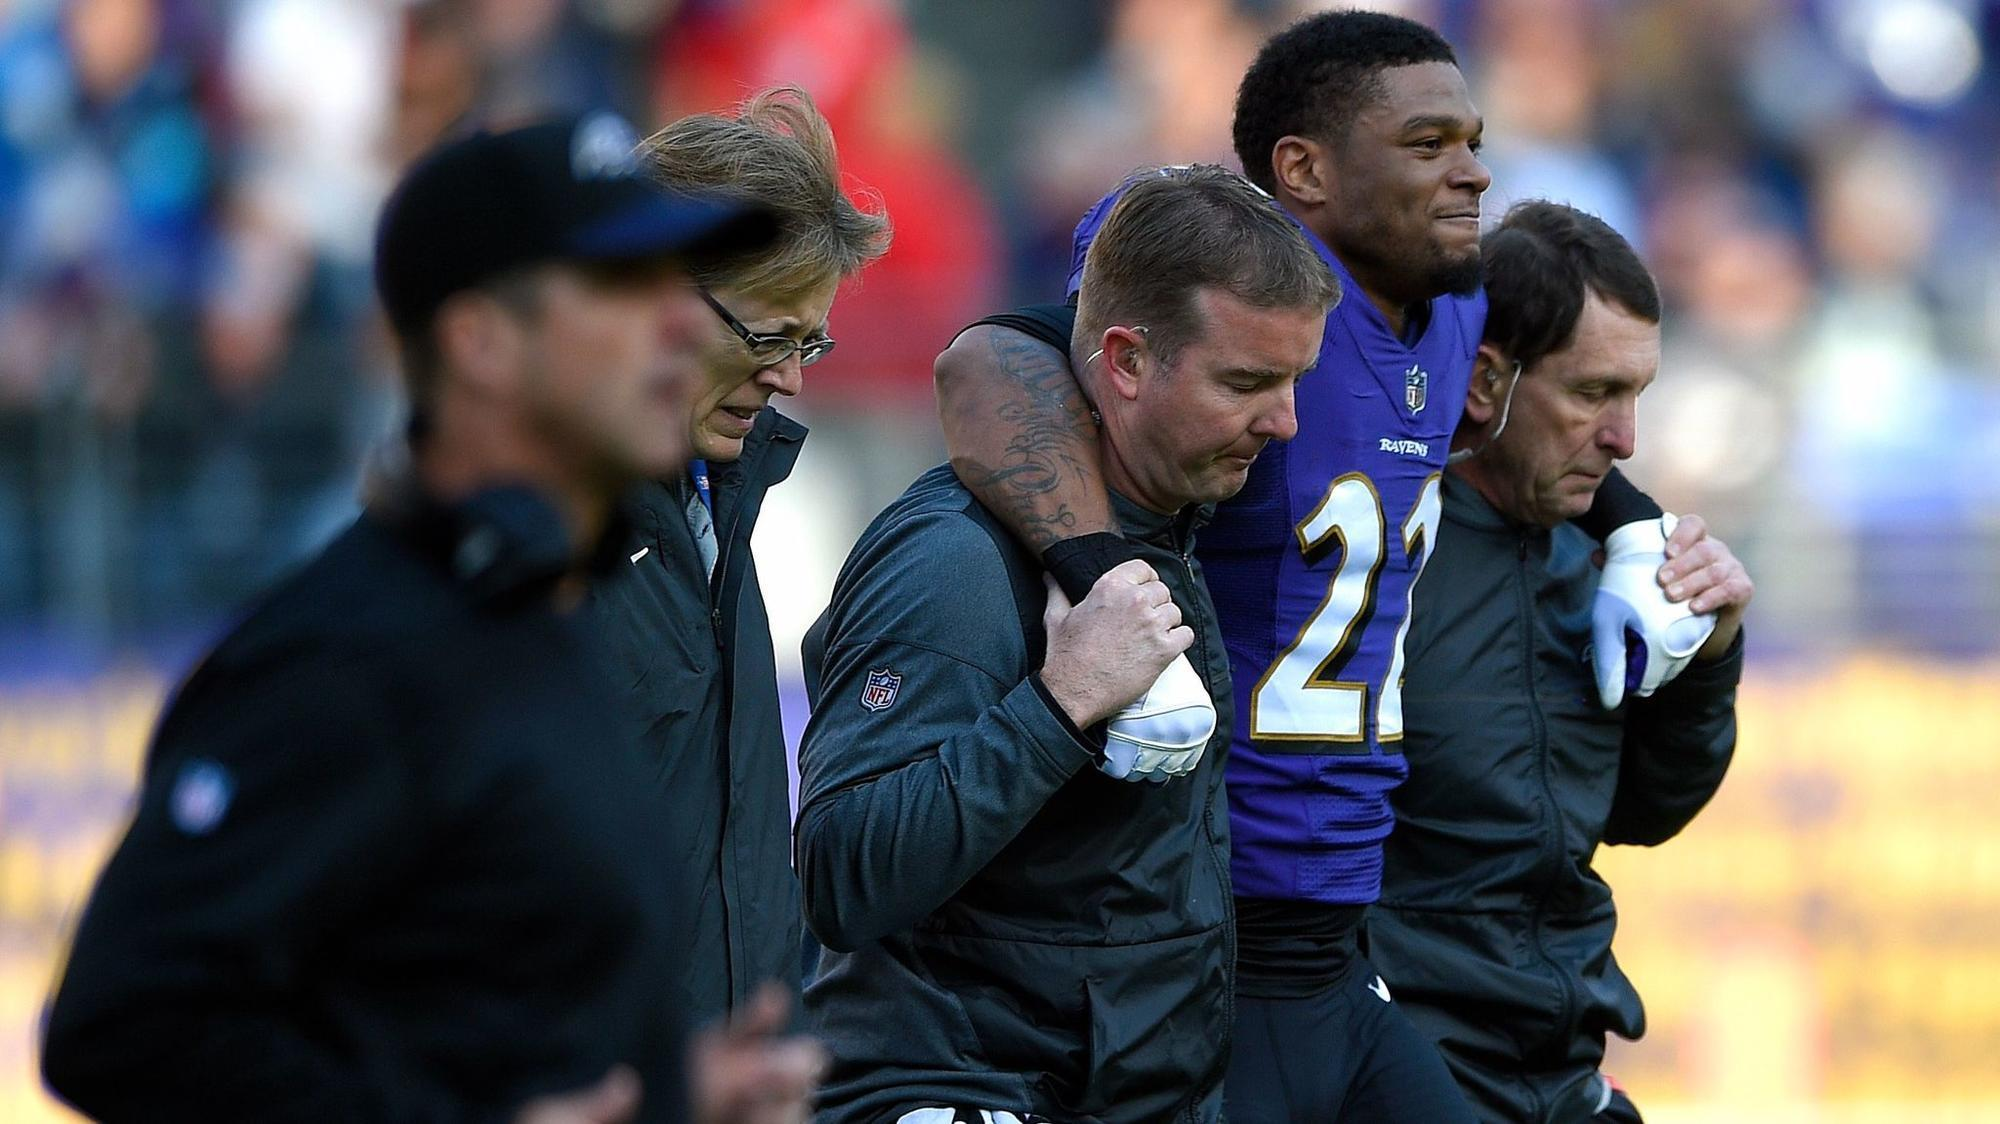 Bs-sp-ravens-news-notes-jimmy-smith-20171205